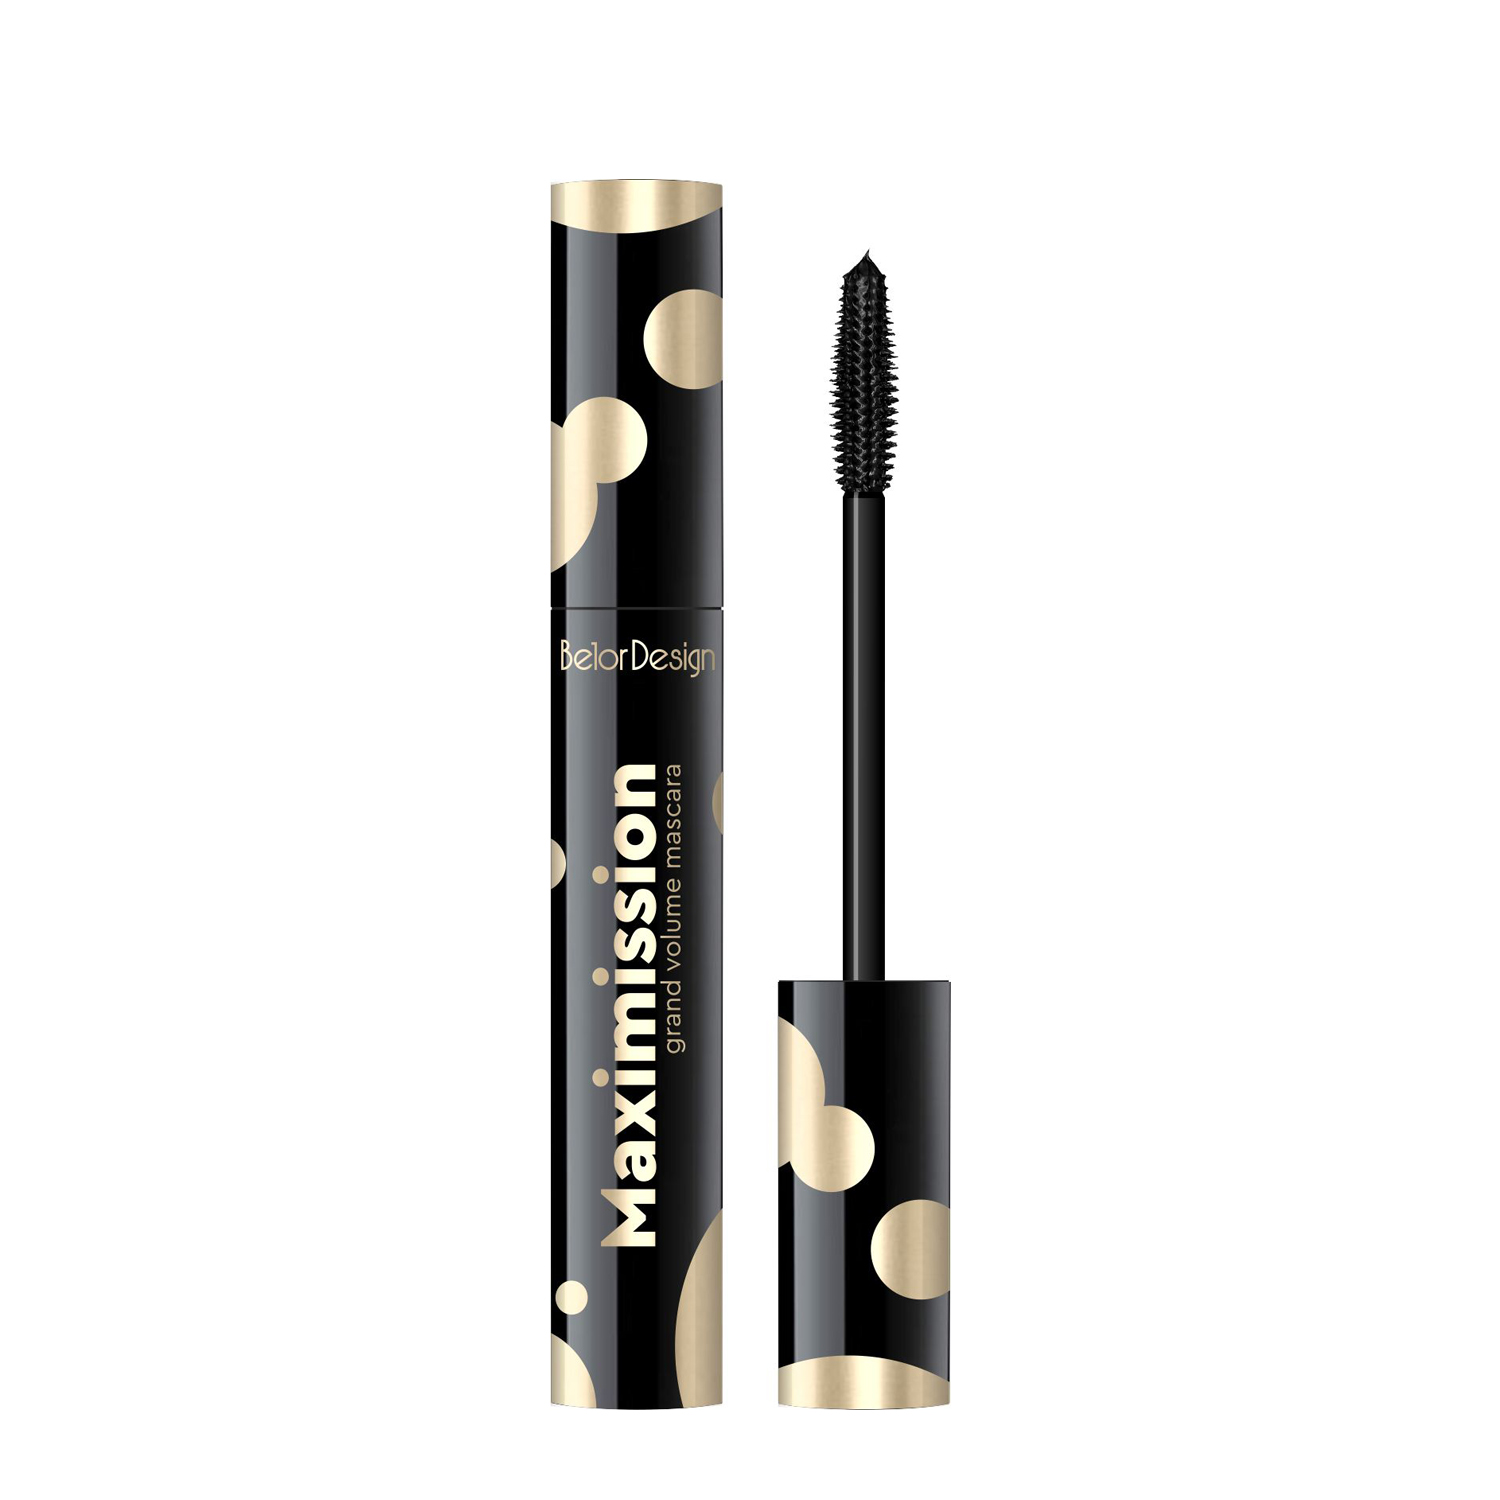 Тушь для ресниц MAXIMISSION GRAND VOLUME MASCARA